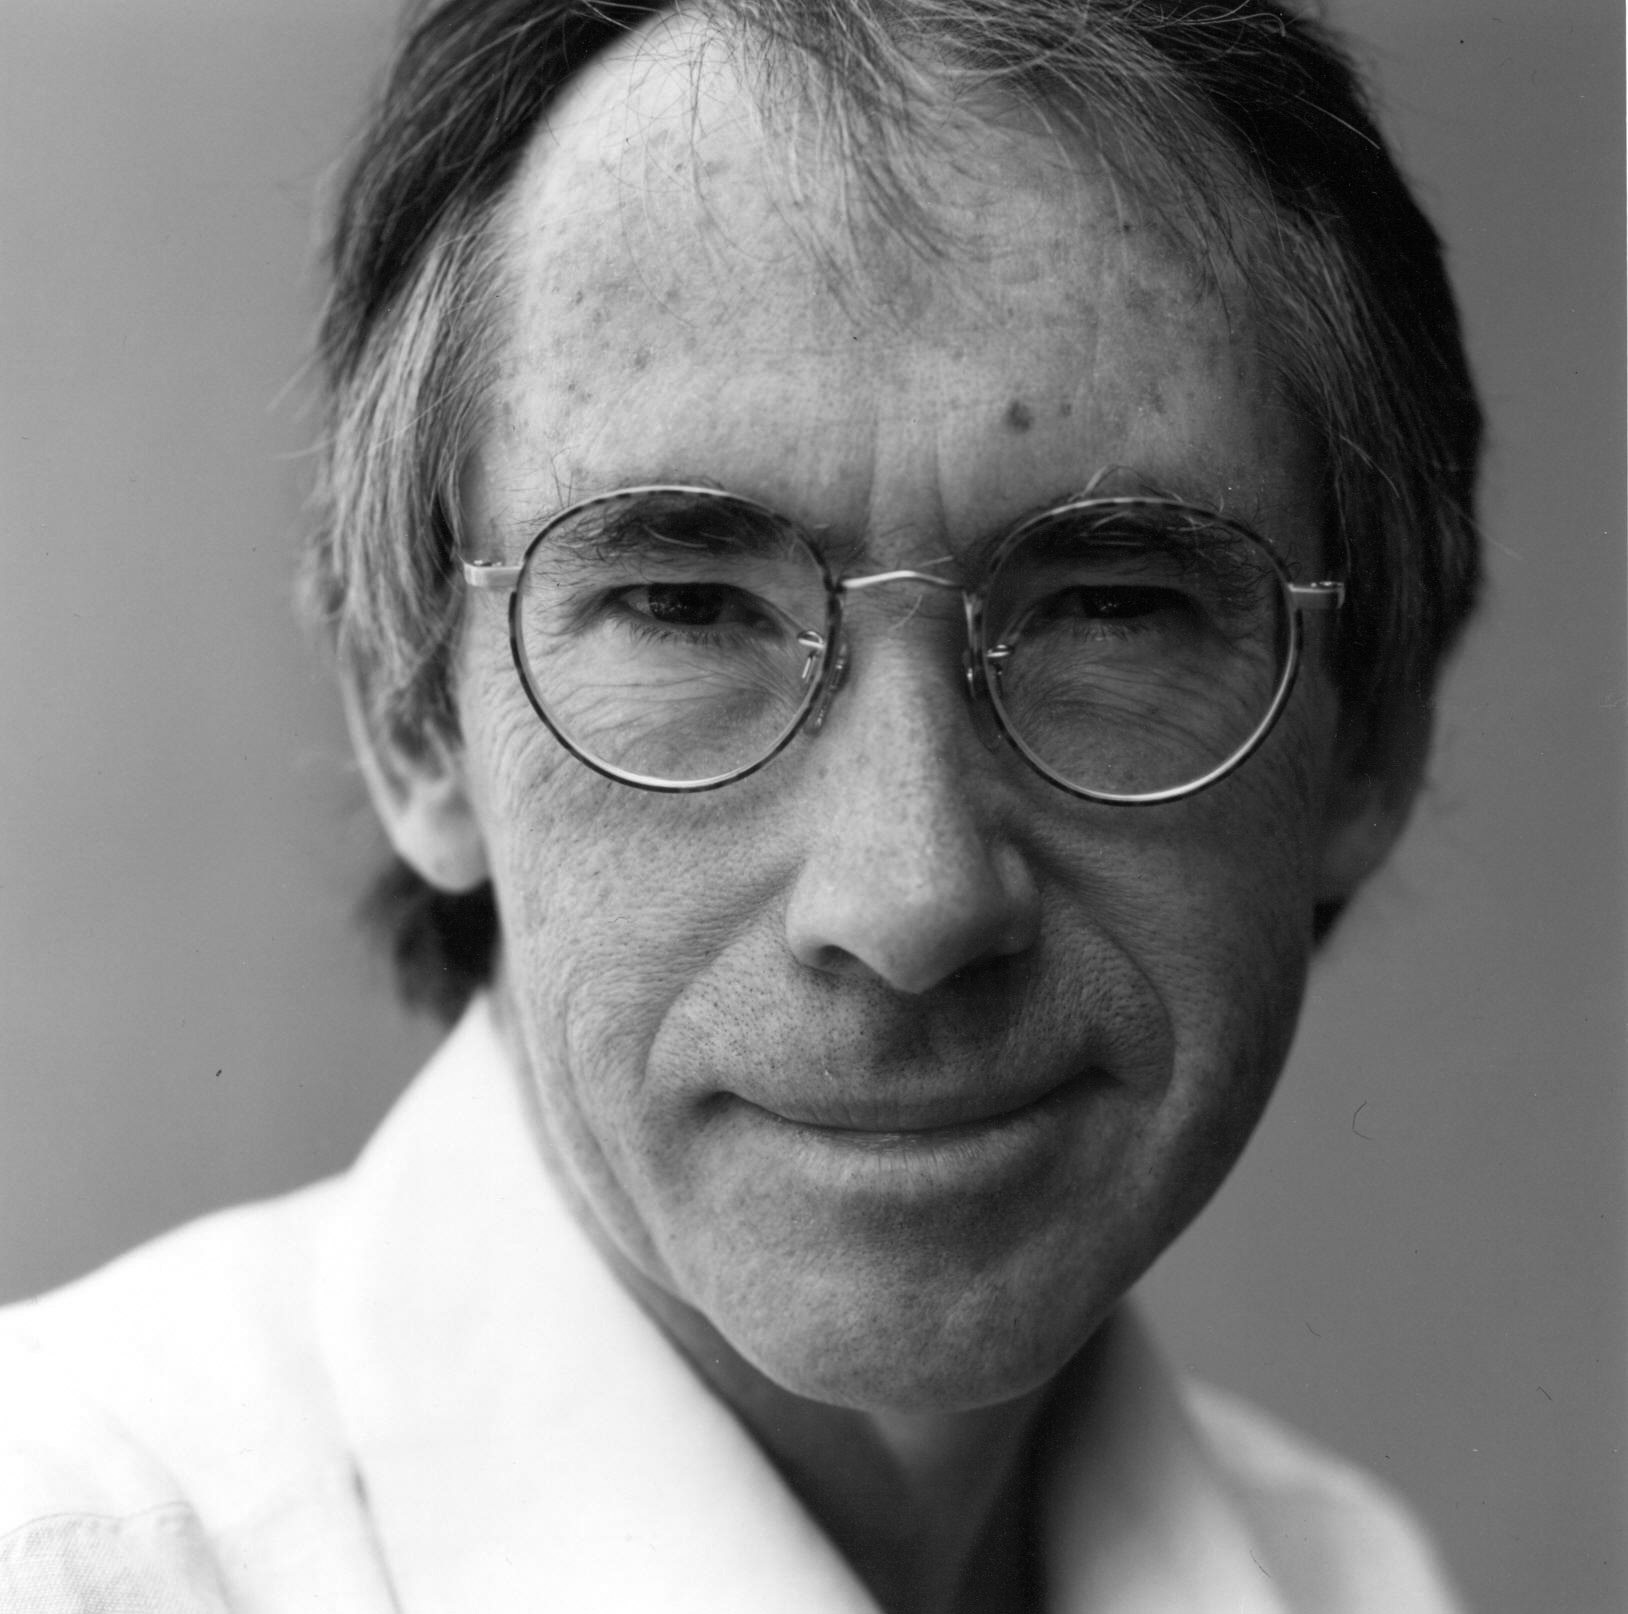 Acclaimed writer Ian McEwan's archive acquired